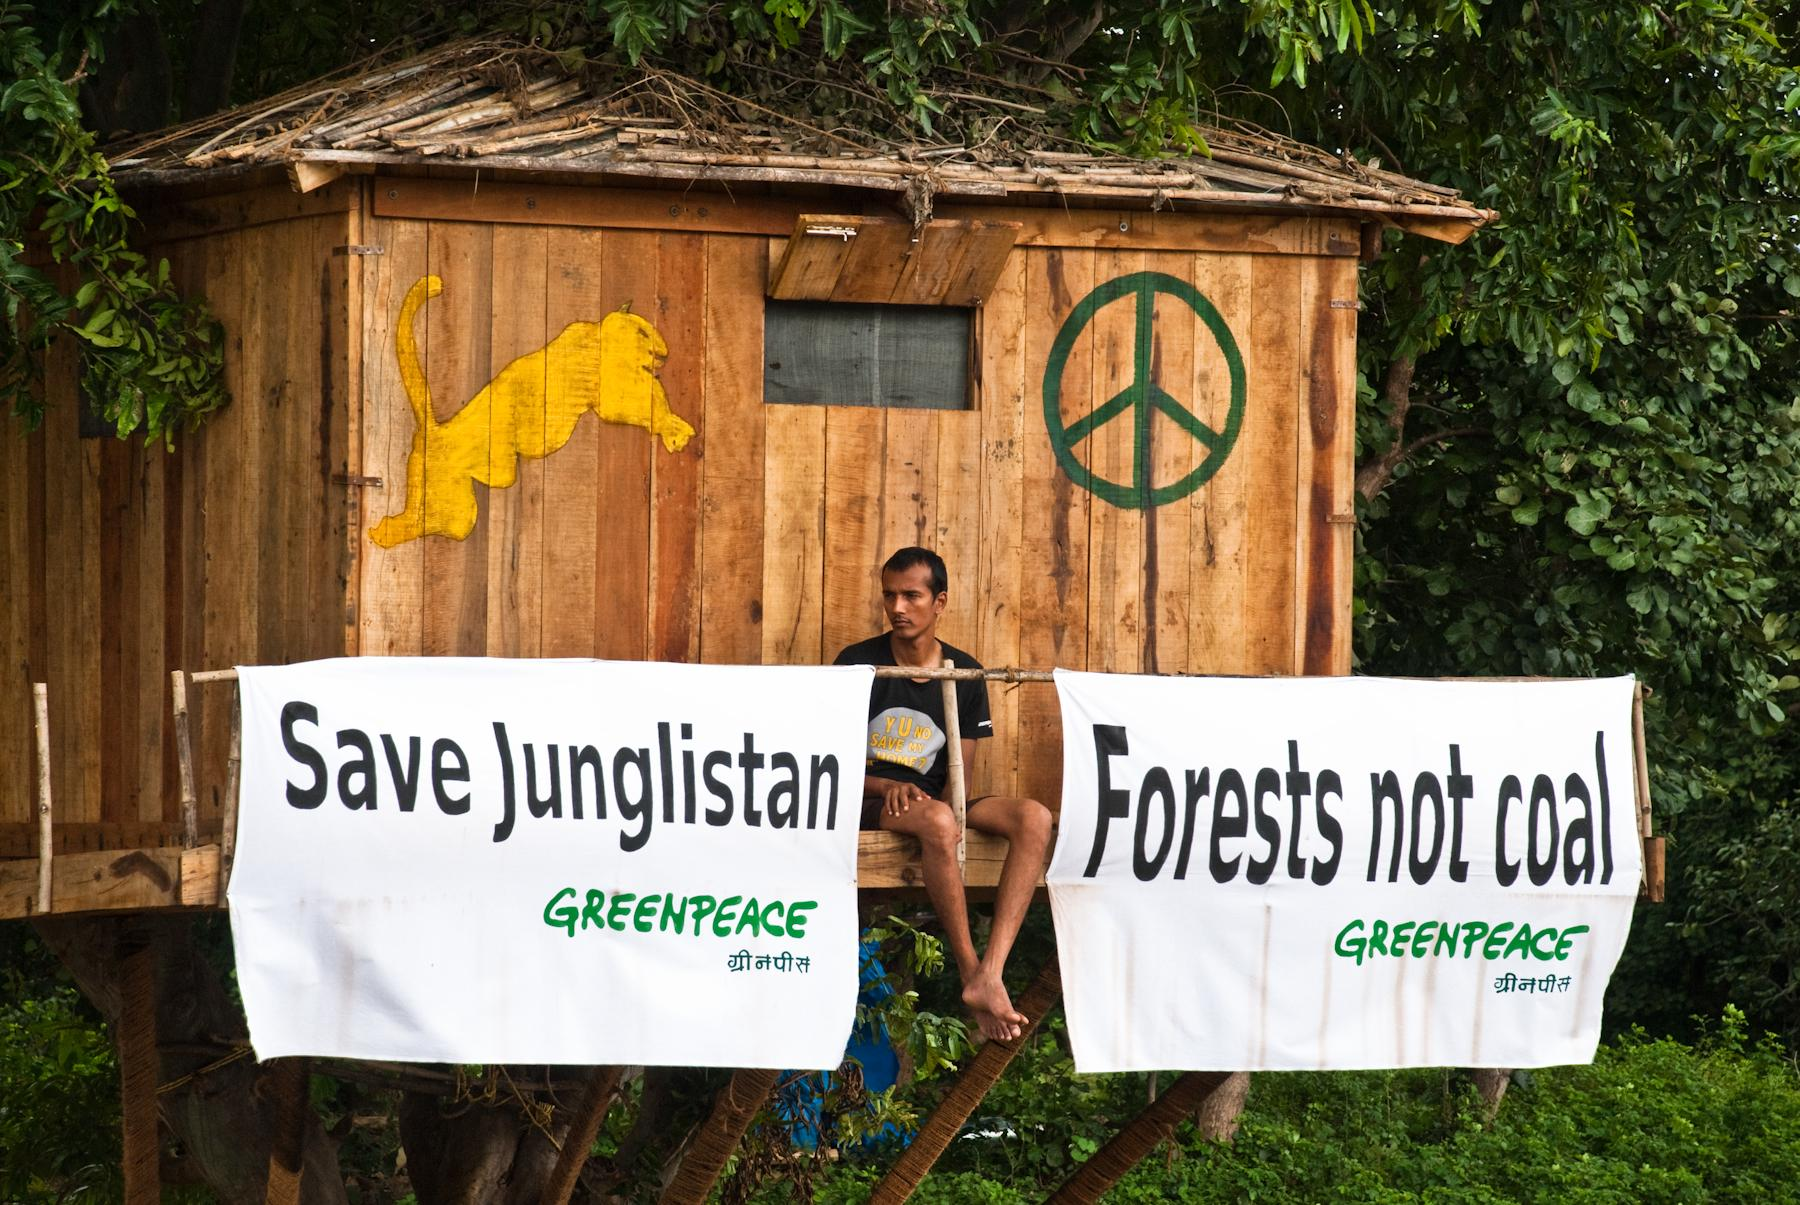 Greenpeace India activist, Brikesh Singh